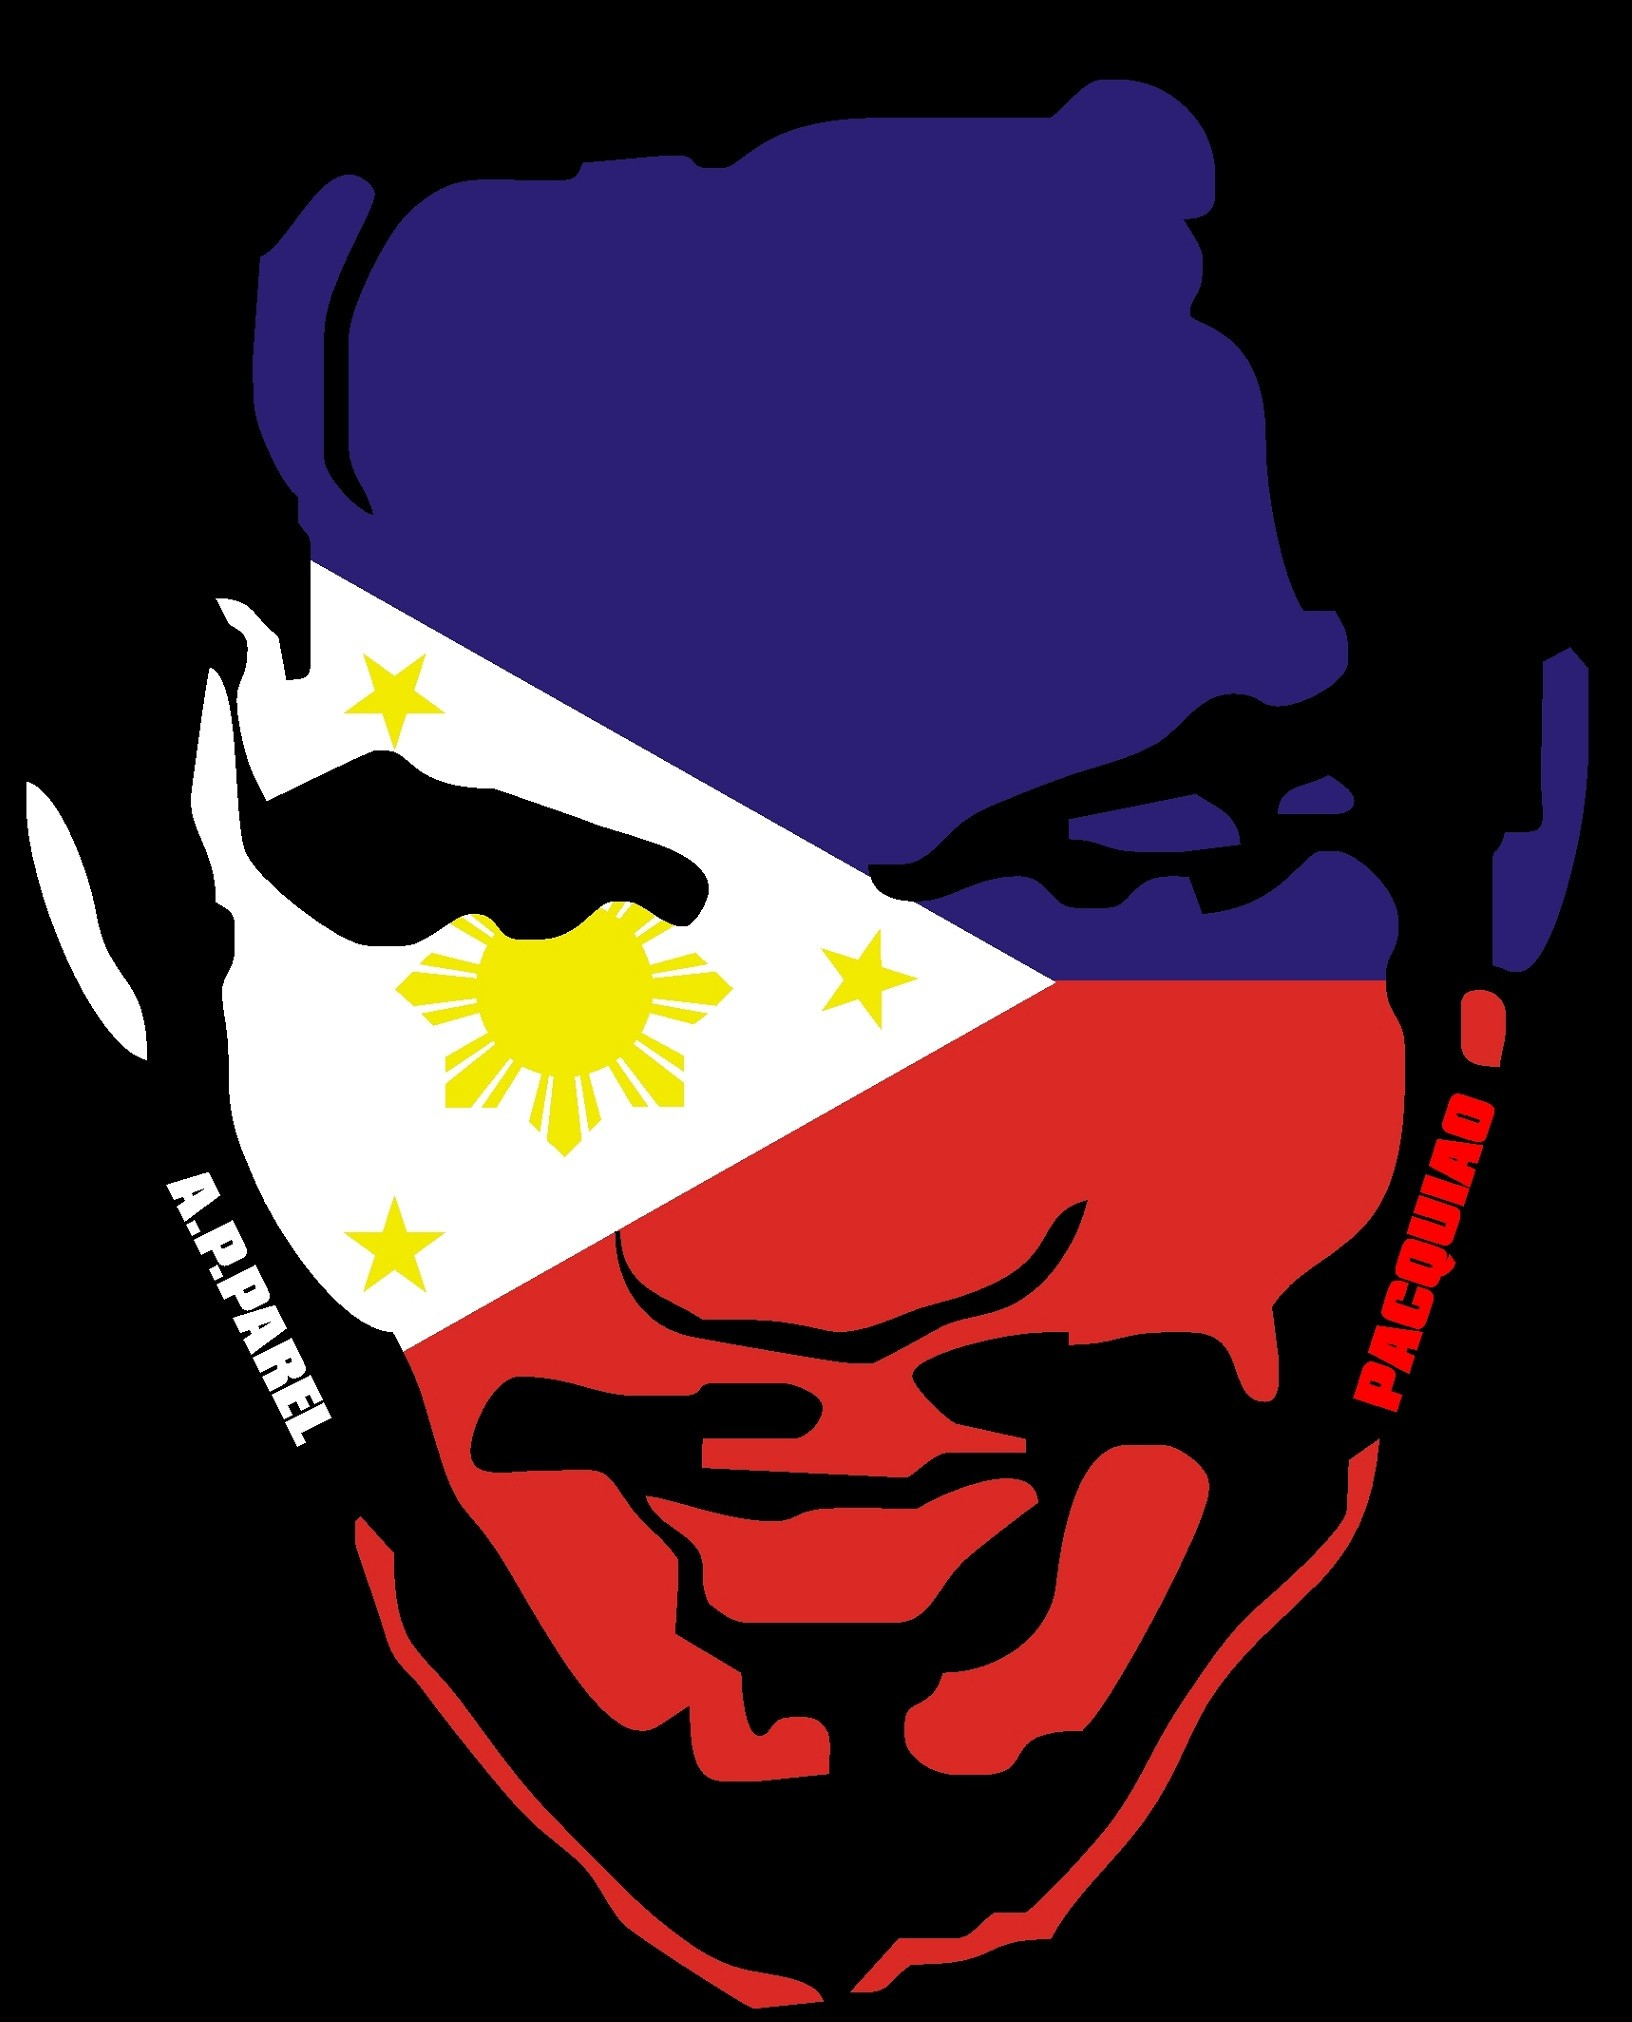 Res: 1632x2022, Largest-Most Detailed Philippines Map and Flag » Travel Around The .